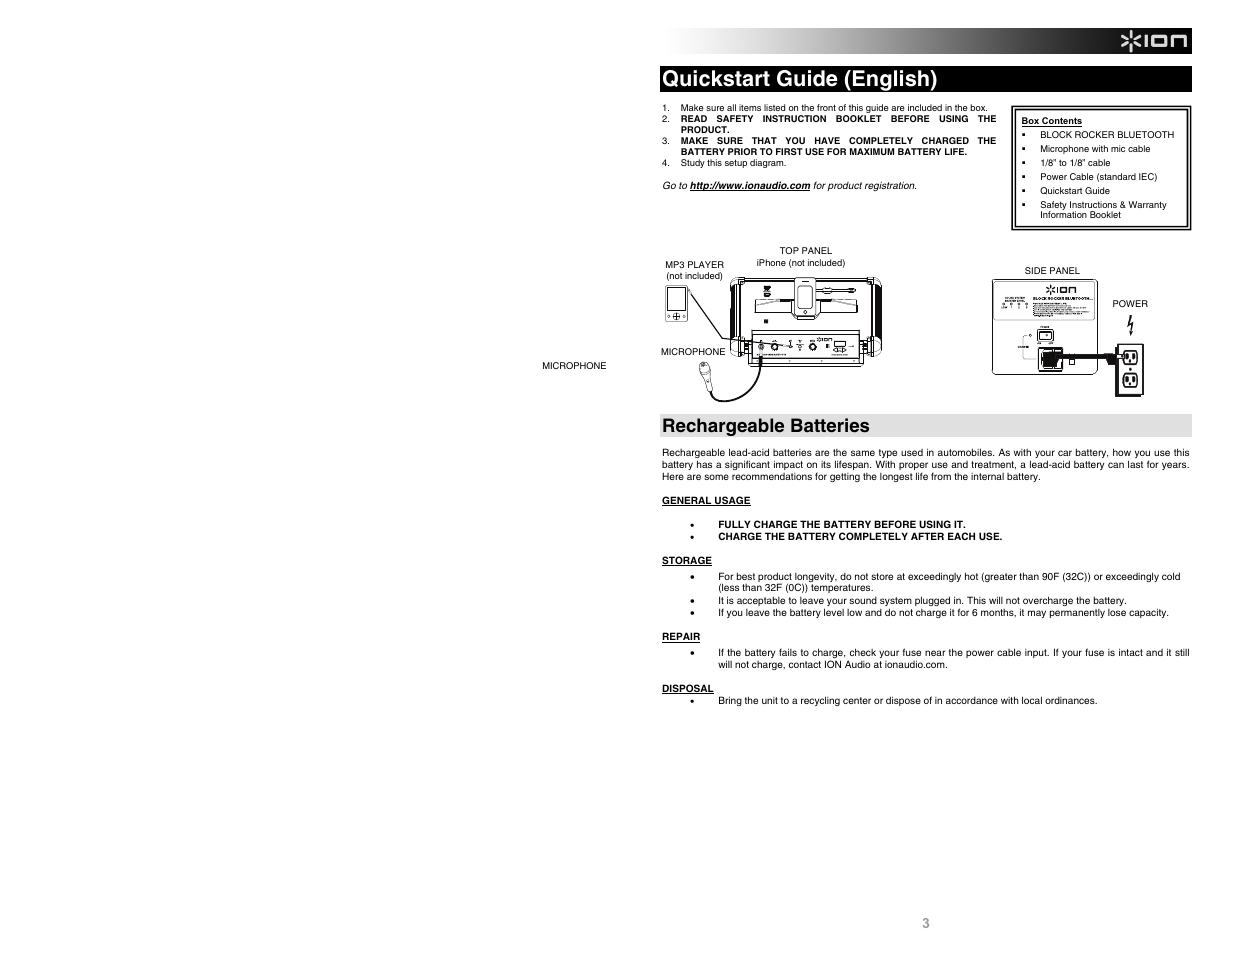 Quickstart guide (english), Rechargeable batteries | ION Audio Block Rocker  Bluetooth iPA56C User Manual | Page 3 / 24